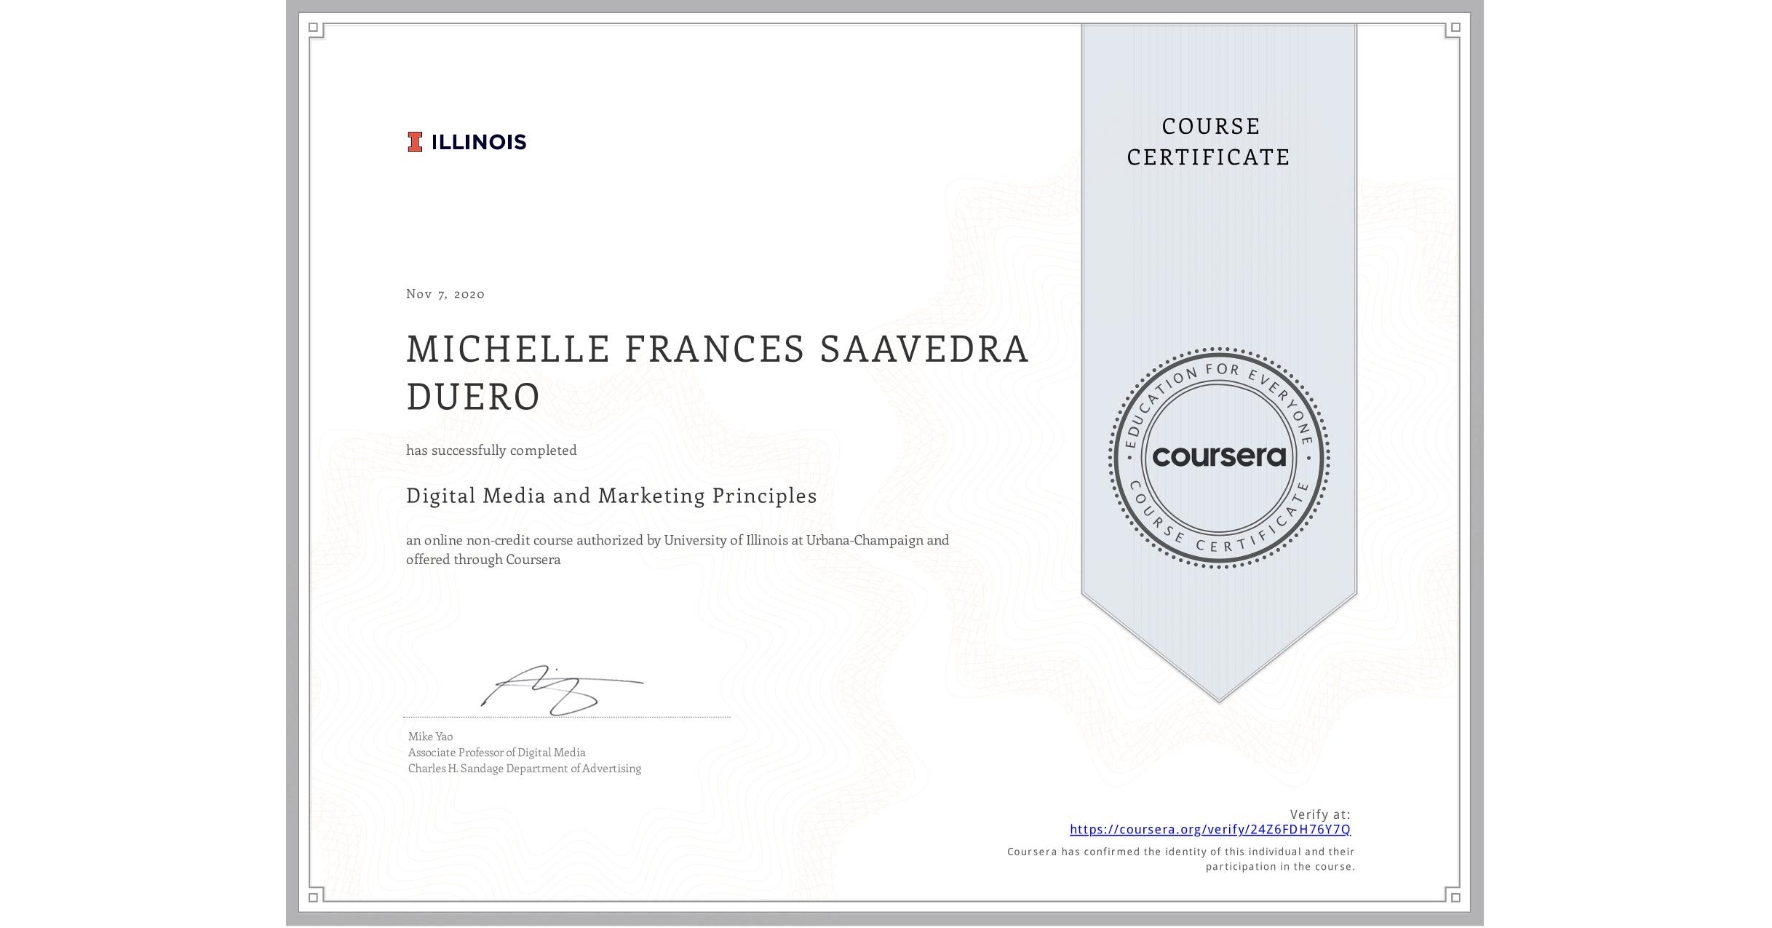 View certificate for MICHELLE FRANCES  SAAVEDRA DUERO, Digital Media and Marketing Principles, an online non-credit course authorized by University of Illinois at Urbana-Champaign and offered through Coursera